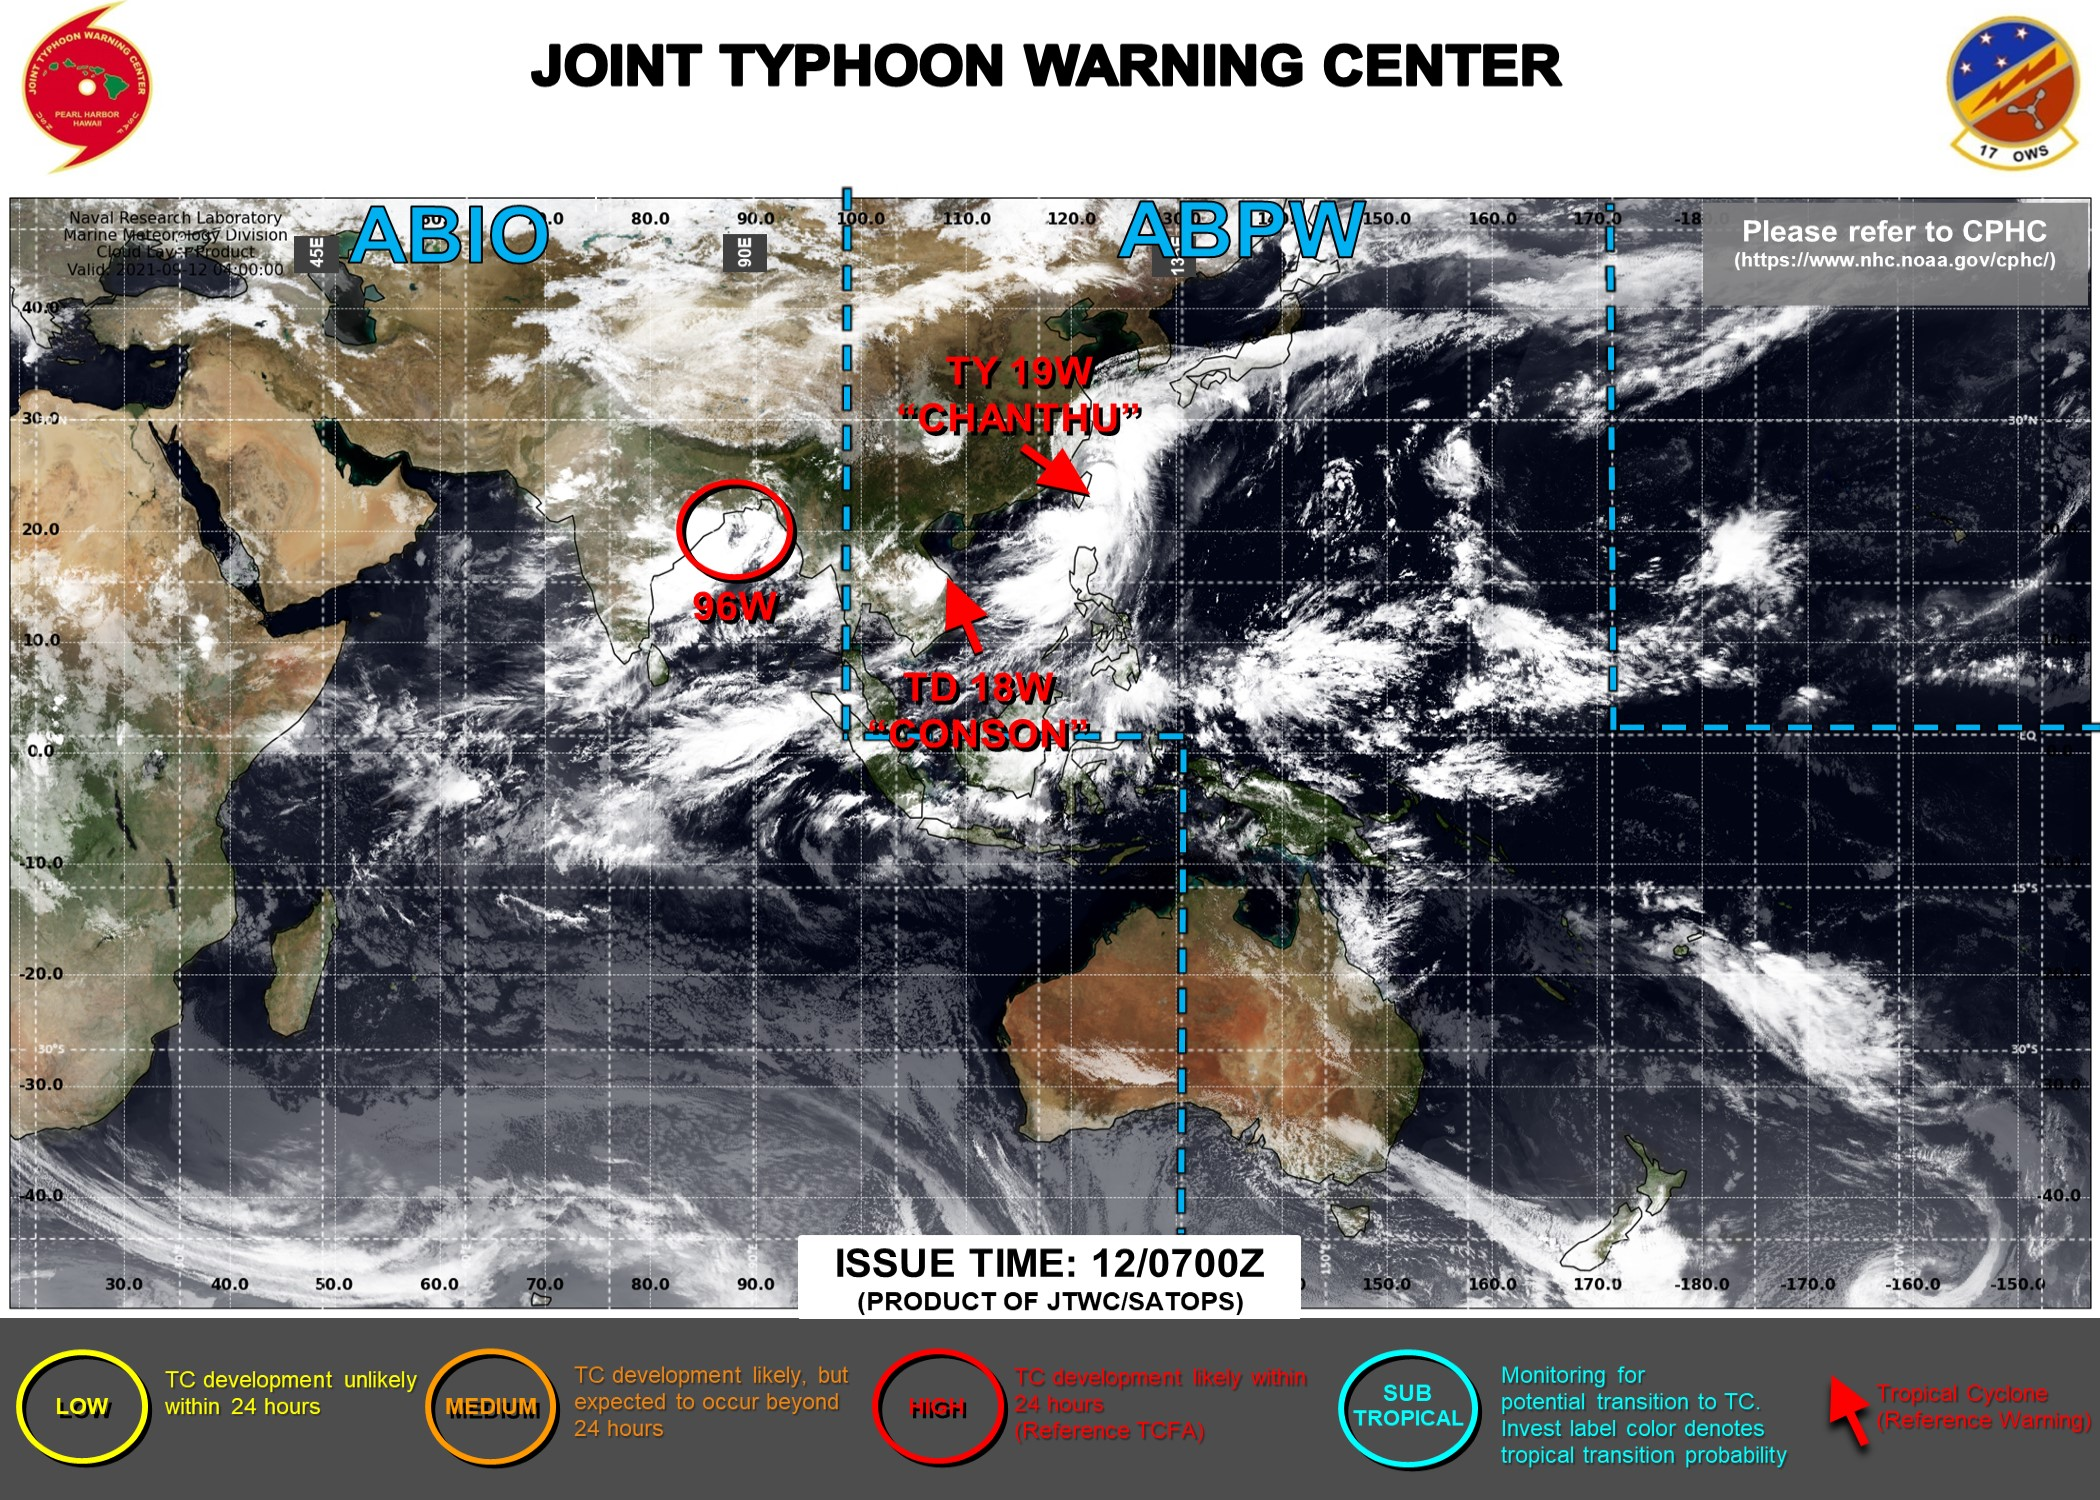 JTWC ARE ISSUING 6HOURLY WARNINGS AND 3HOURLY SATELLITE BULLETINS ON 18W AND 19W. 95B WAS UP-GRADED TO HIGH AT 12/07UTC.